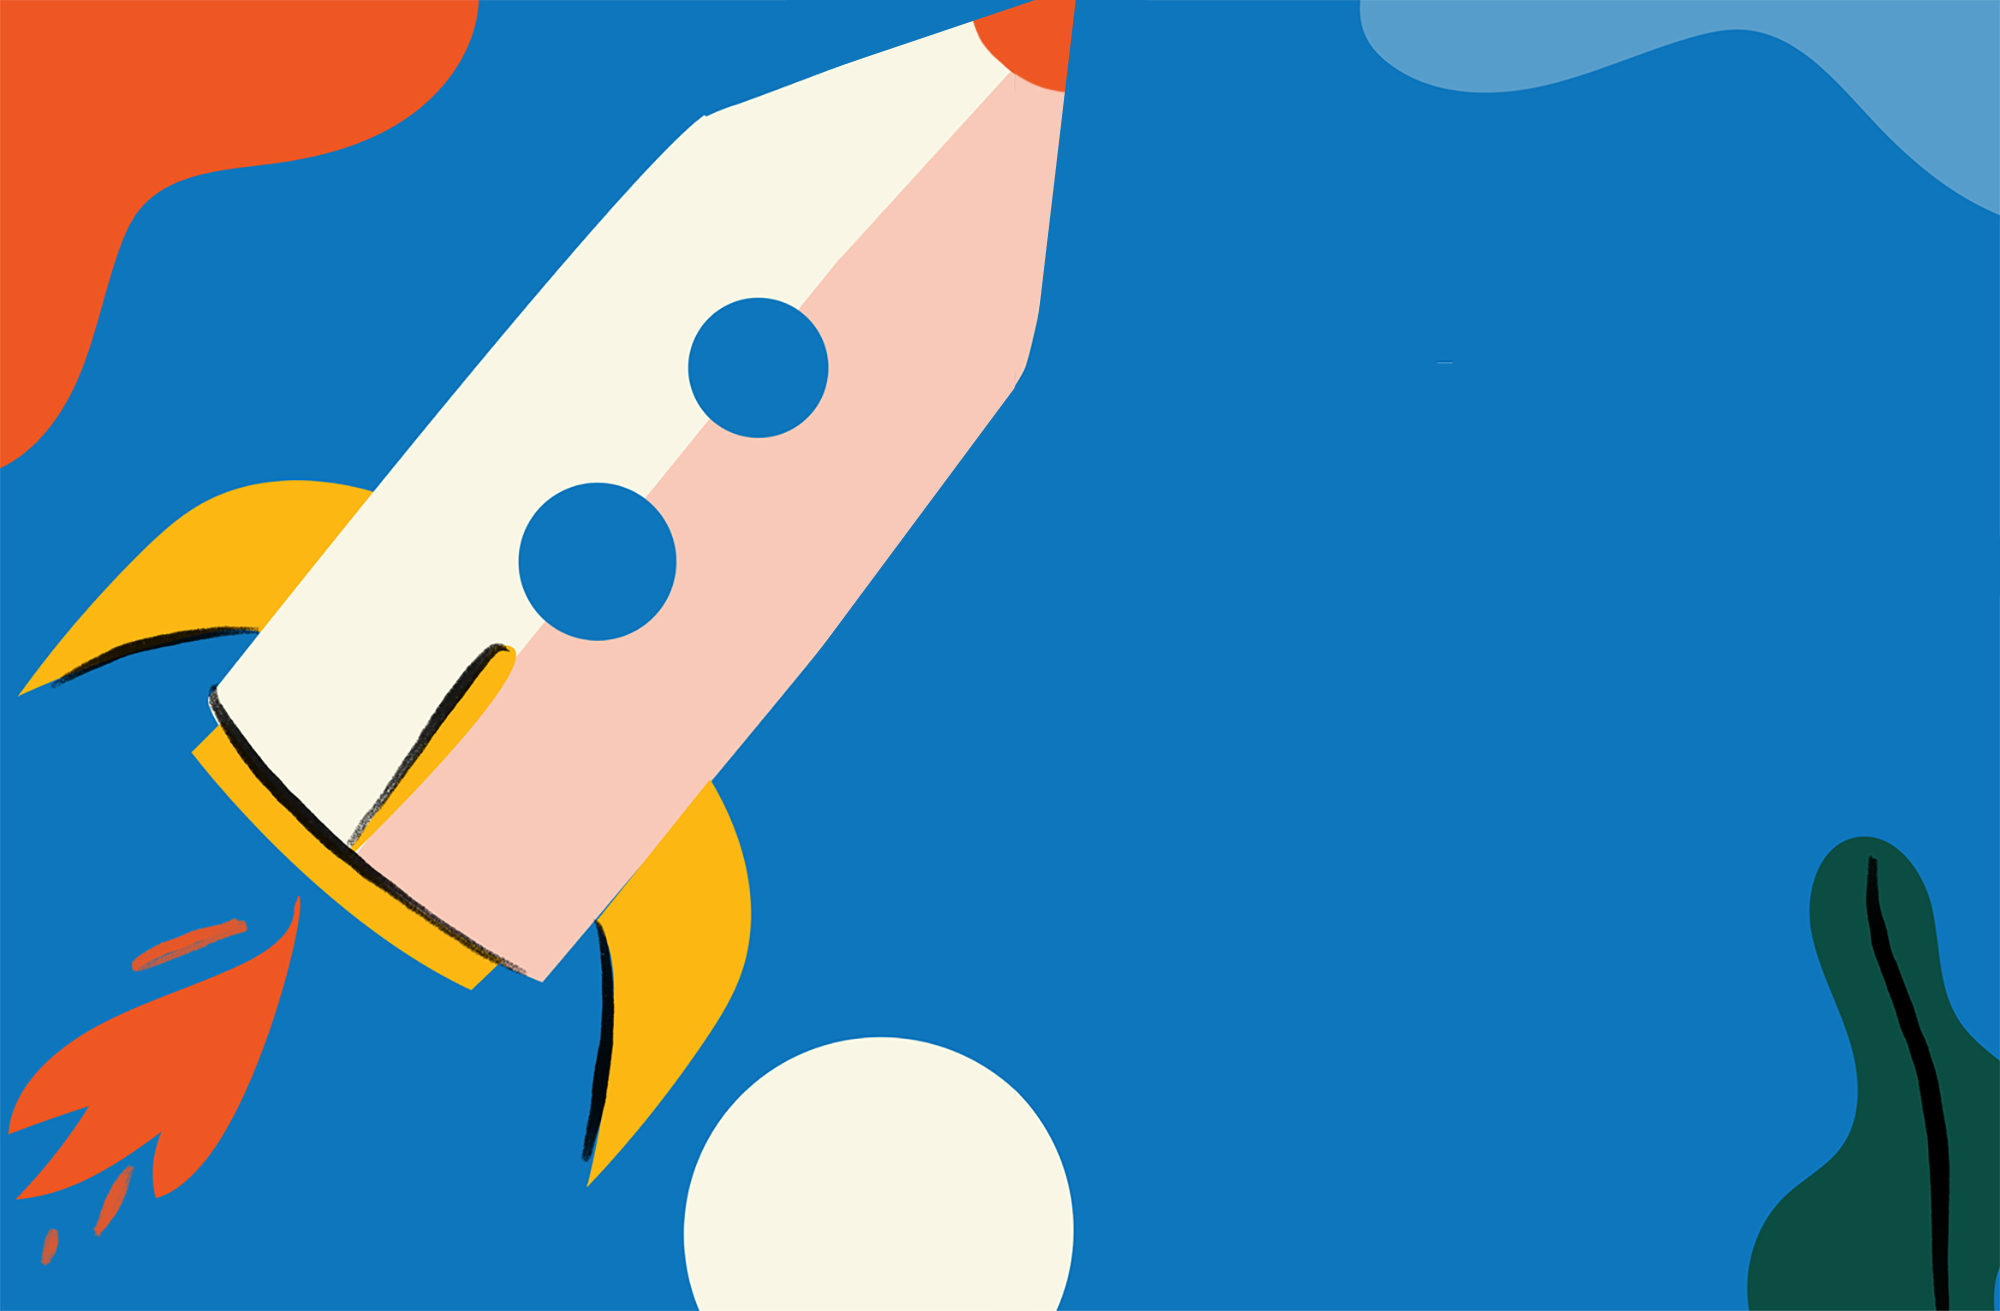 rocket ship illustration